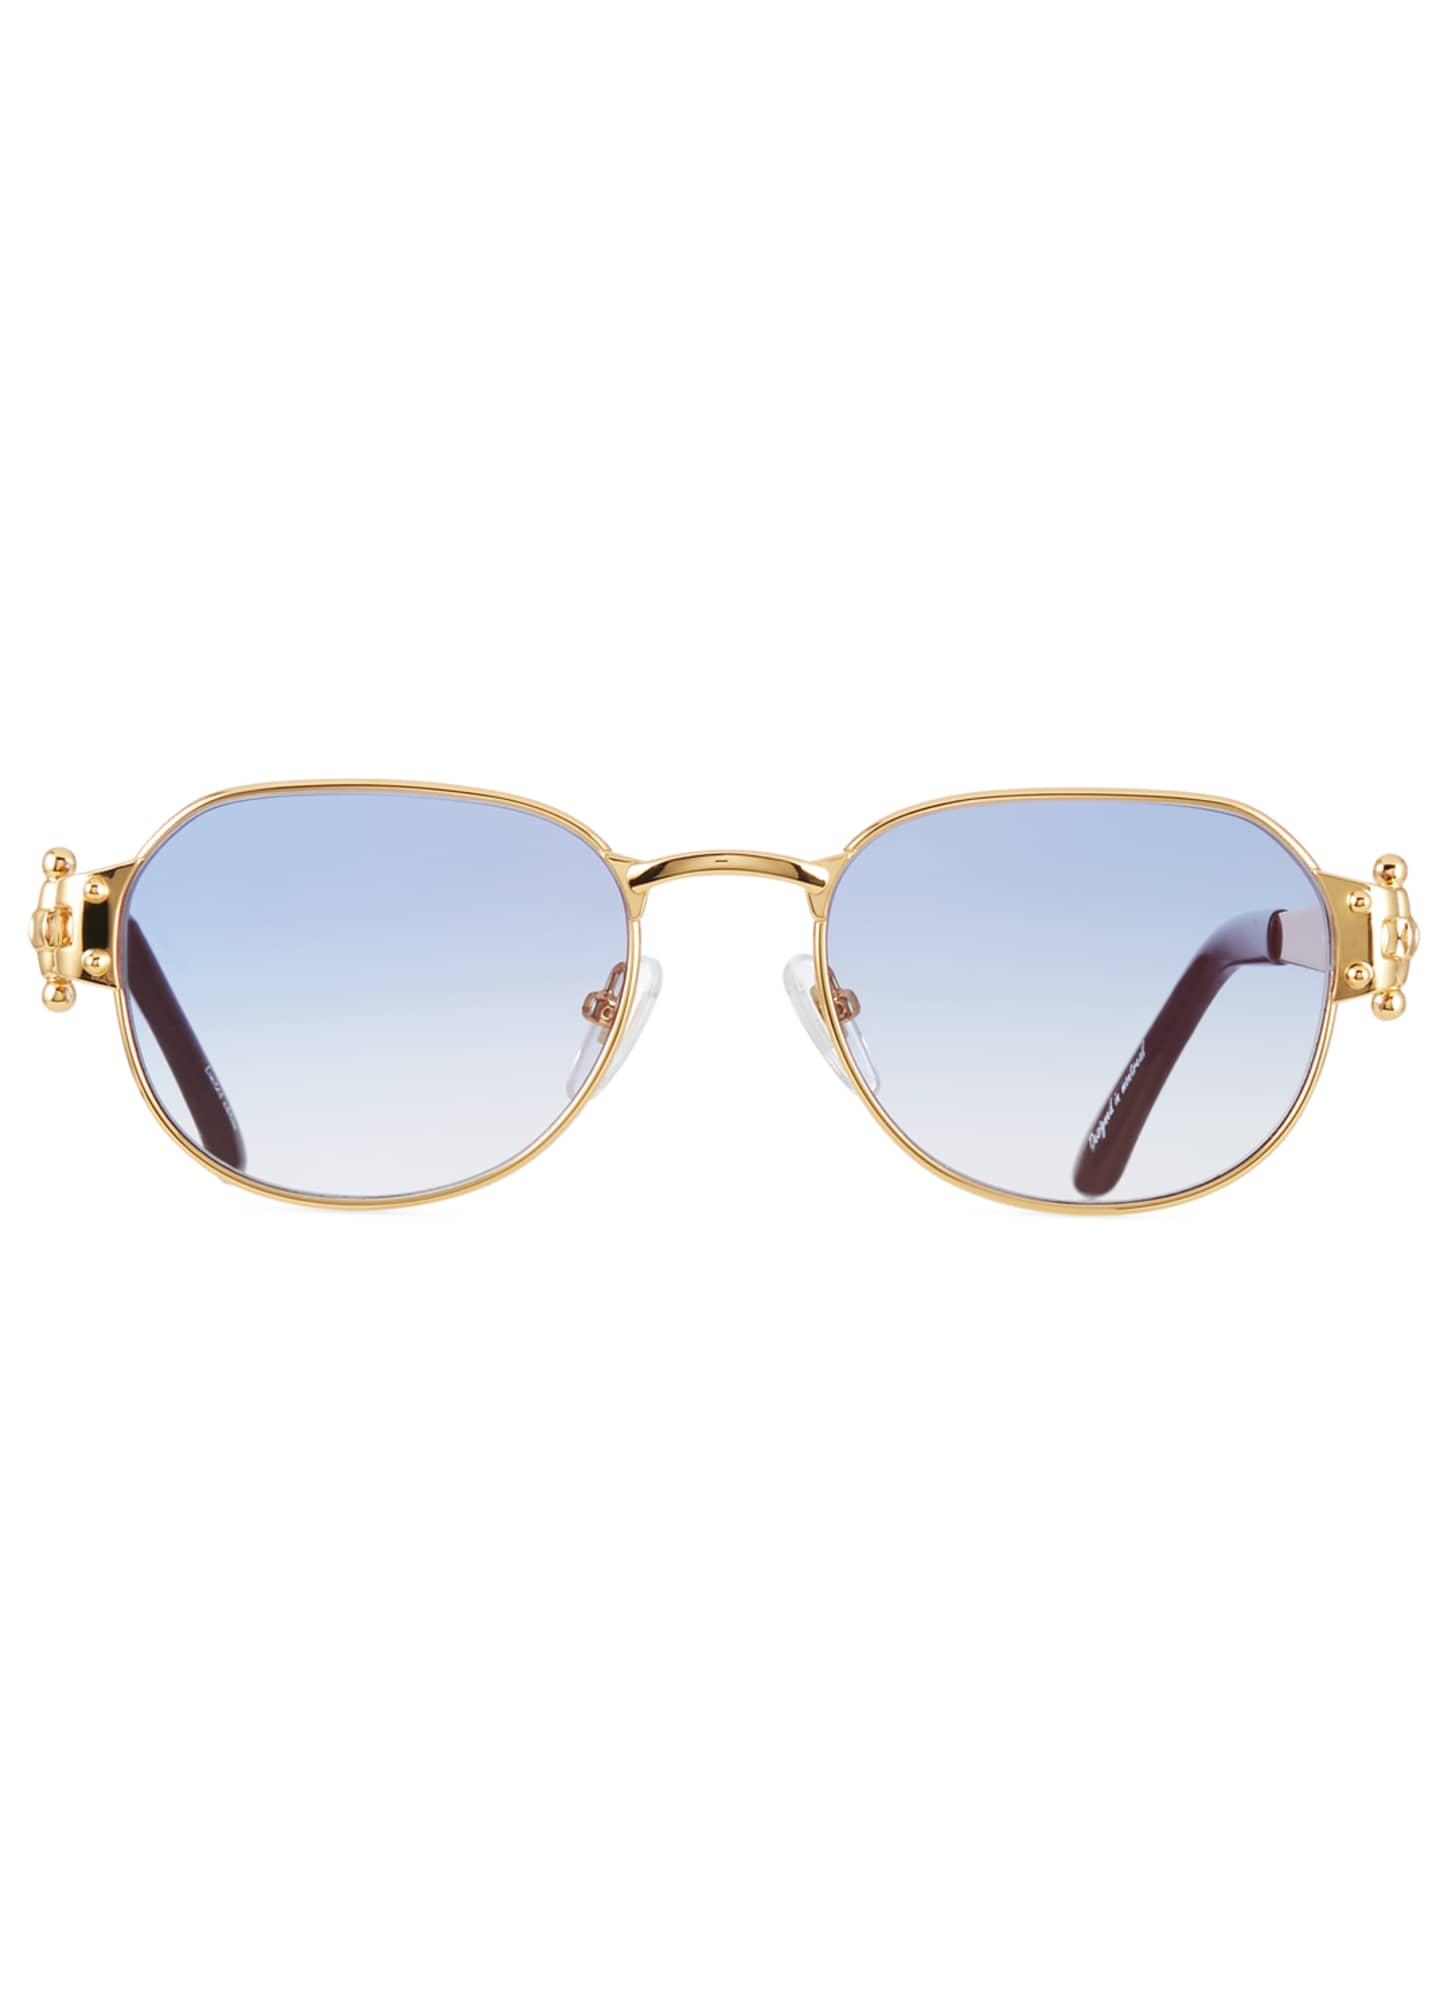 Image 2 of 3: Men's 1999 Masterpiece Gold-Plated Sunglasses